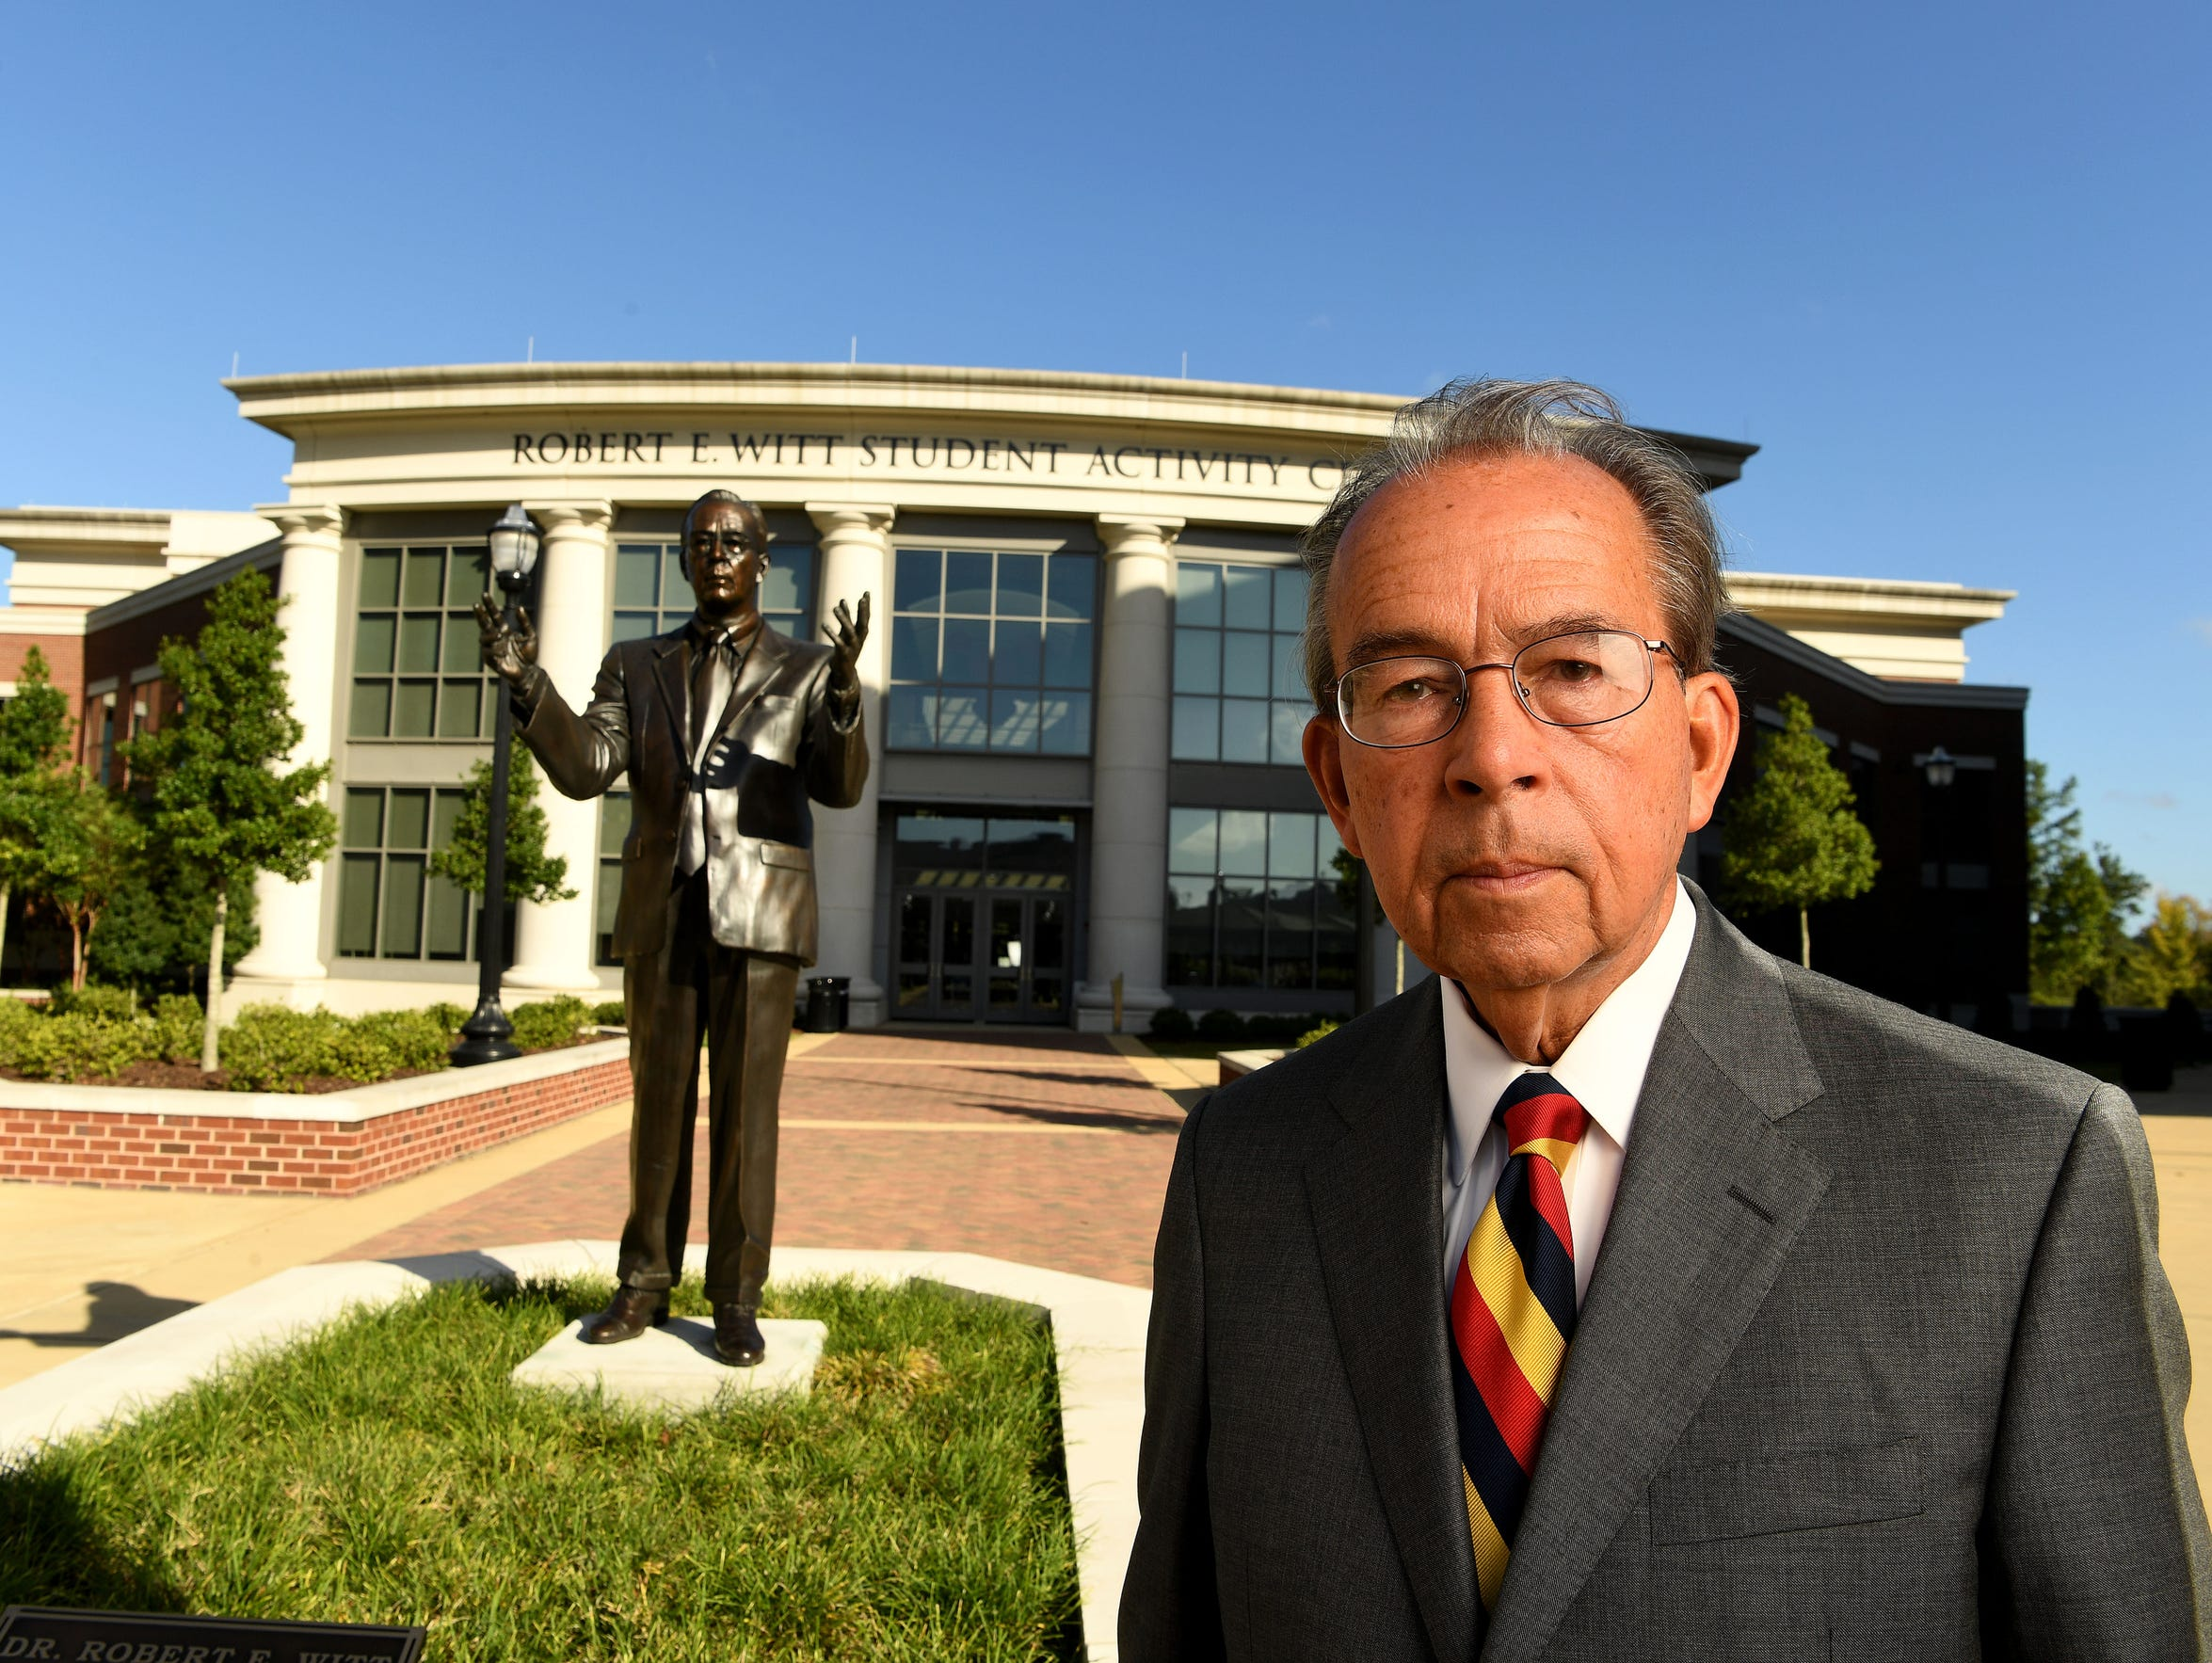 Robert Witt has been immortalized at the University of Alabama, and not just because he helped to hire Nick Saban in 2007.